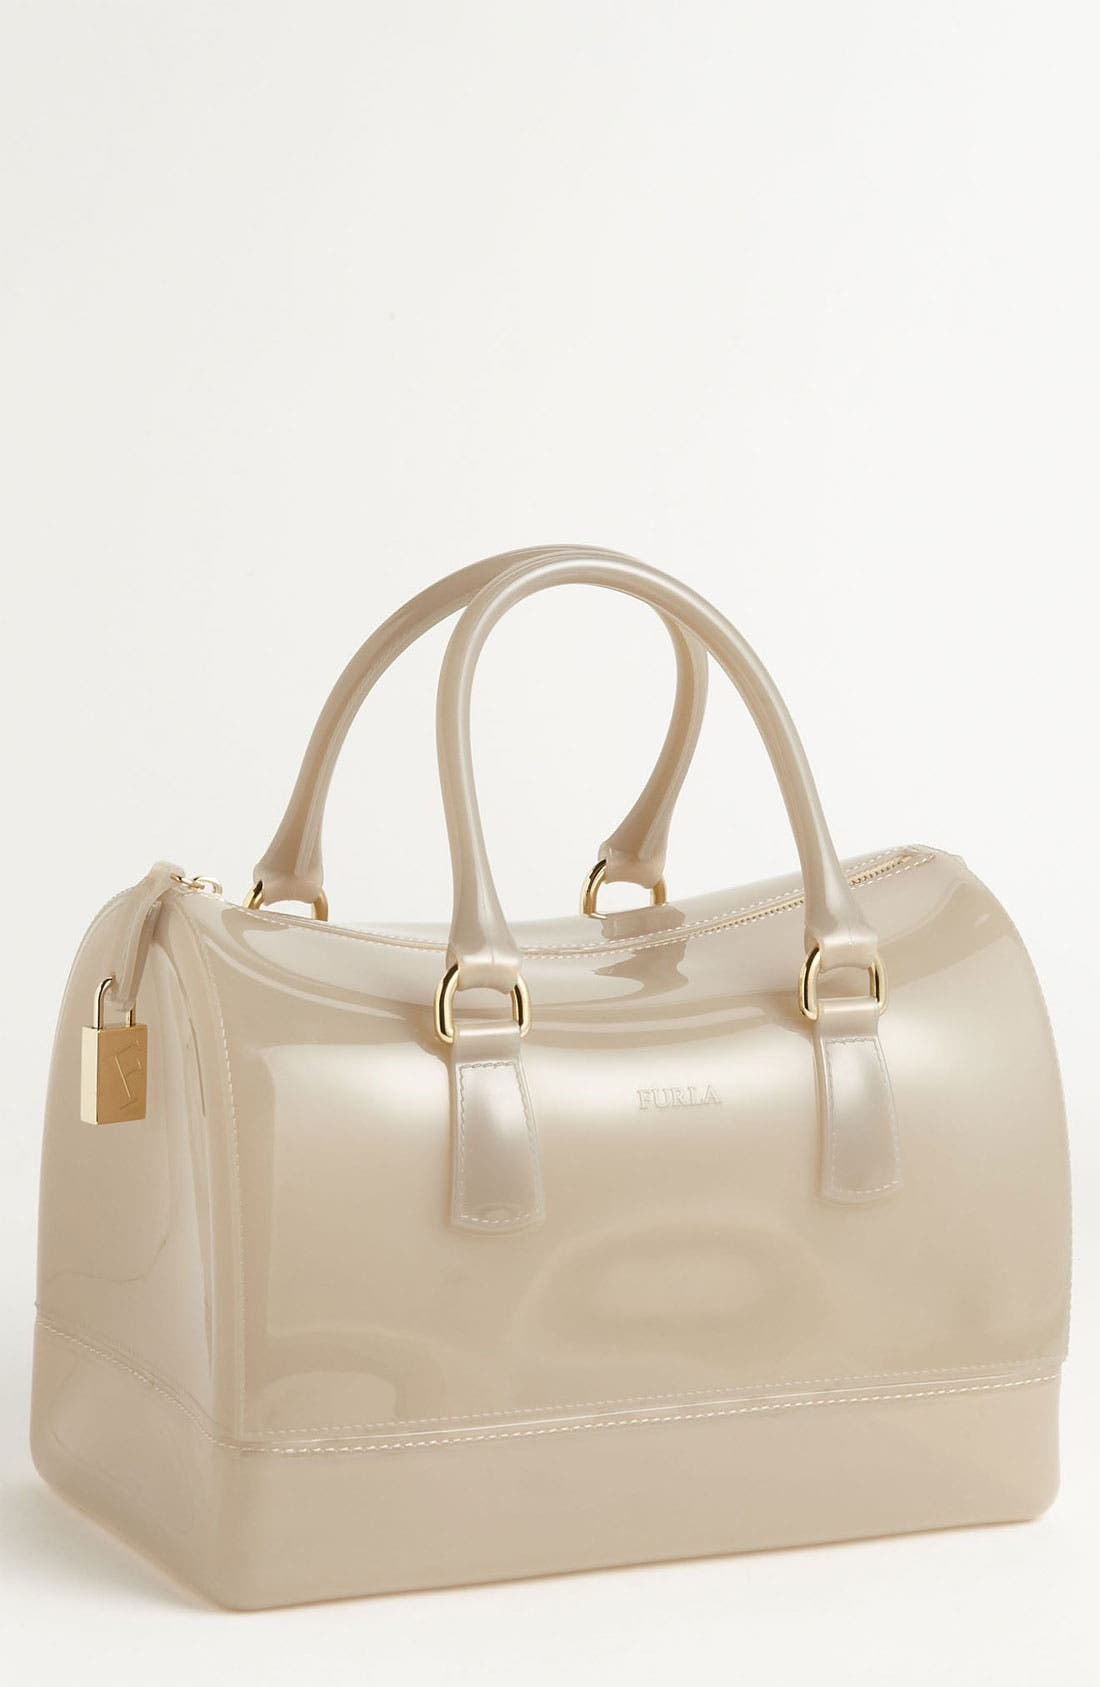 Alternate Image 1 Selected - Furla 'Candy' Transparent Rubber Satchel